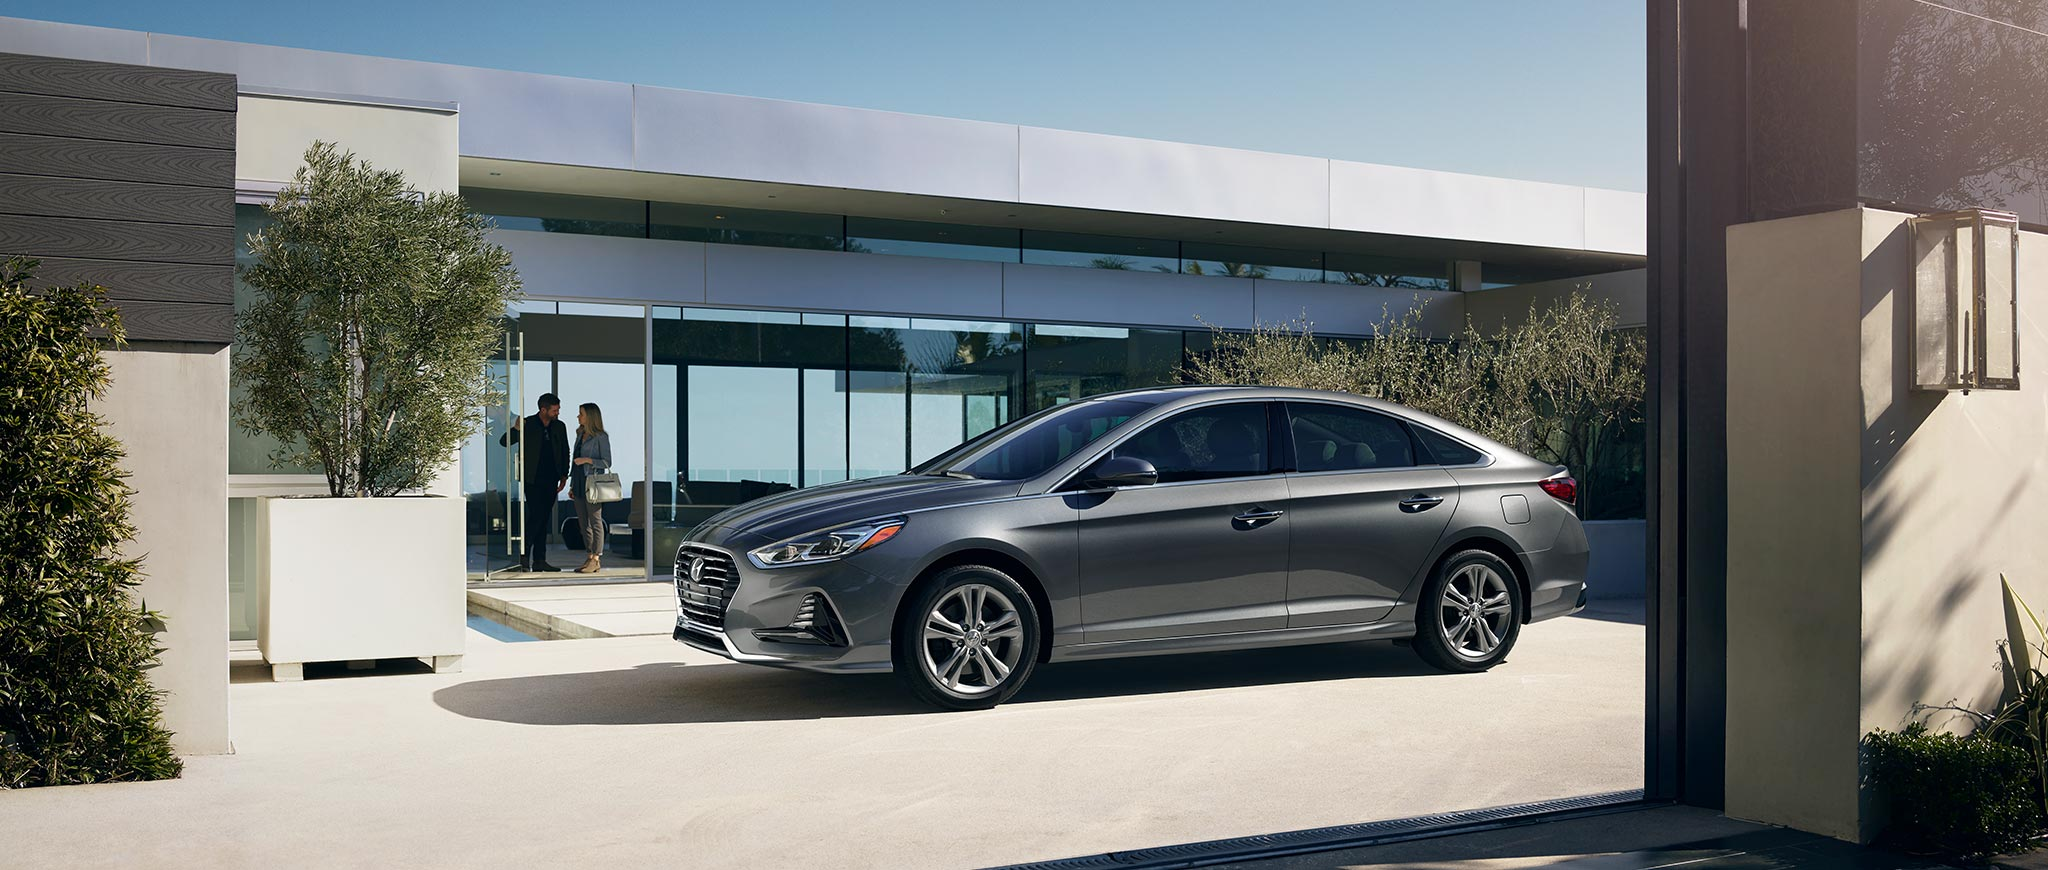 connecticut nbc due recall kia international hyundai ap national nearly problems news million to engine vehicles